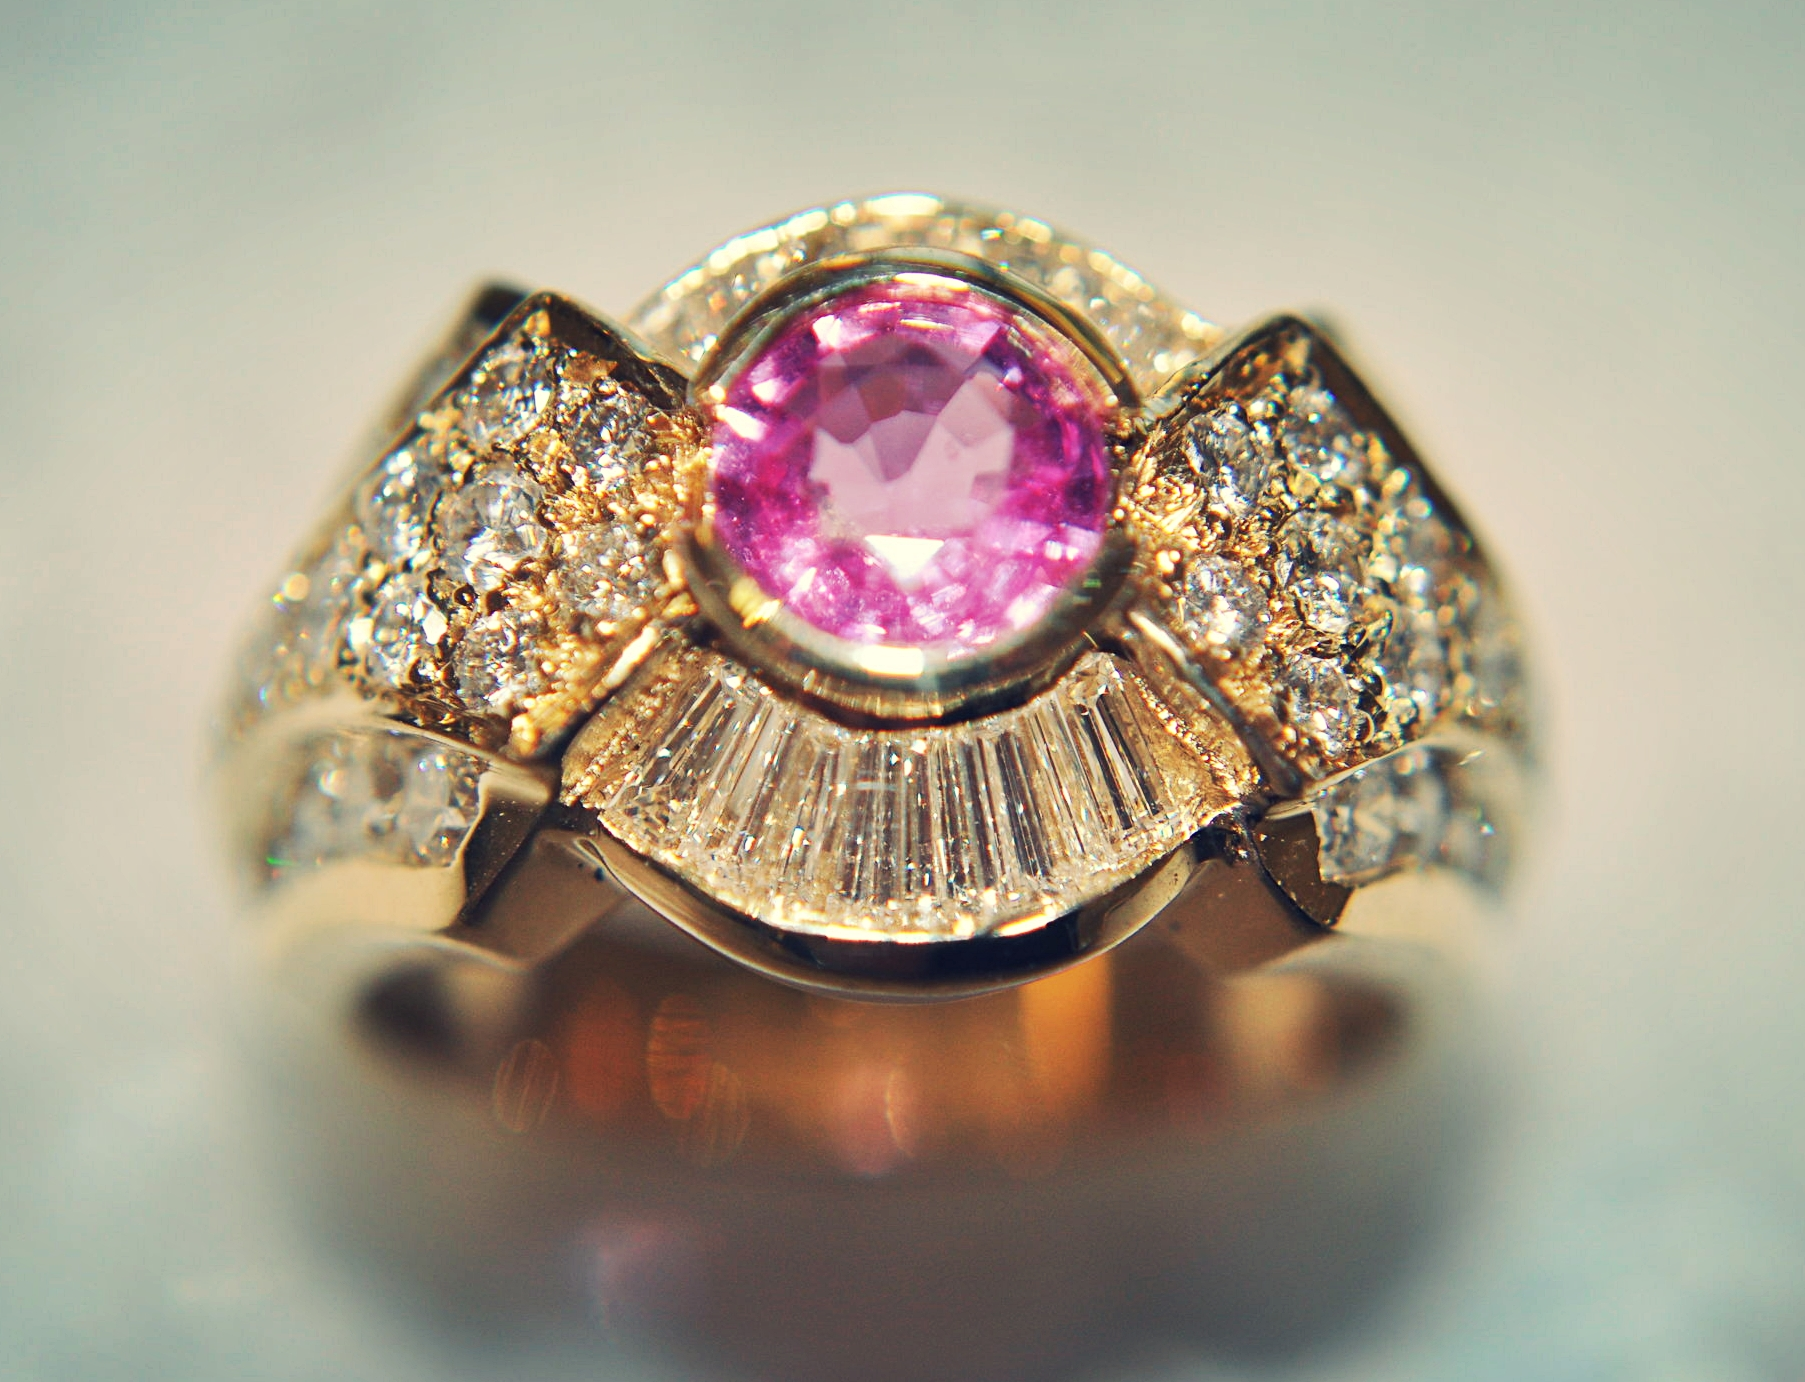 PinkSapphireDiamondRing